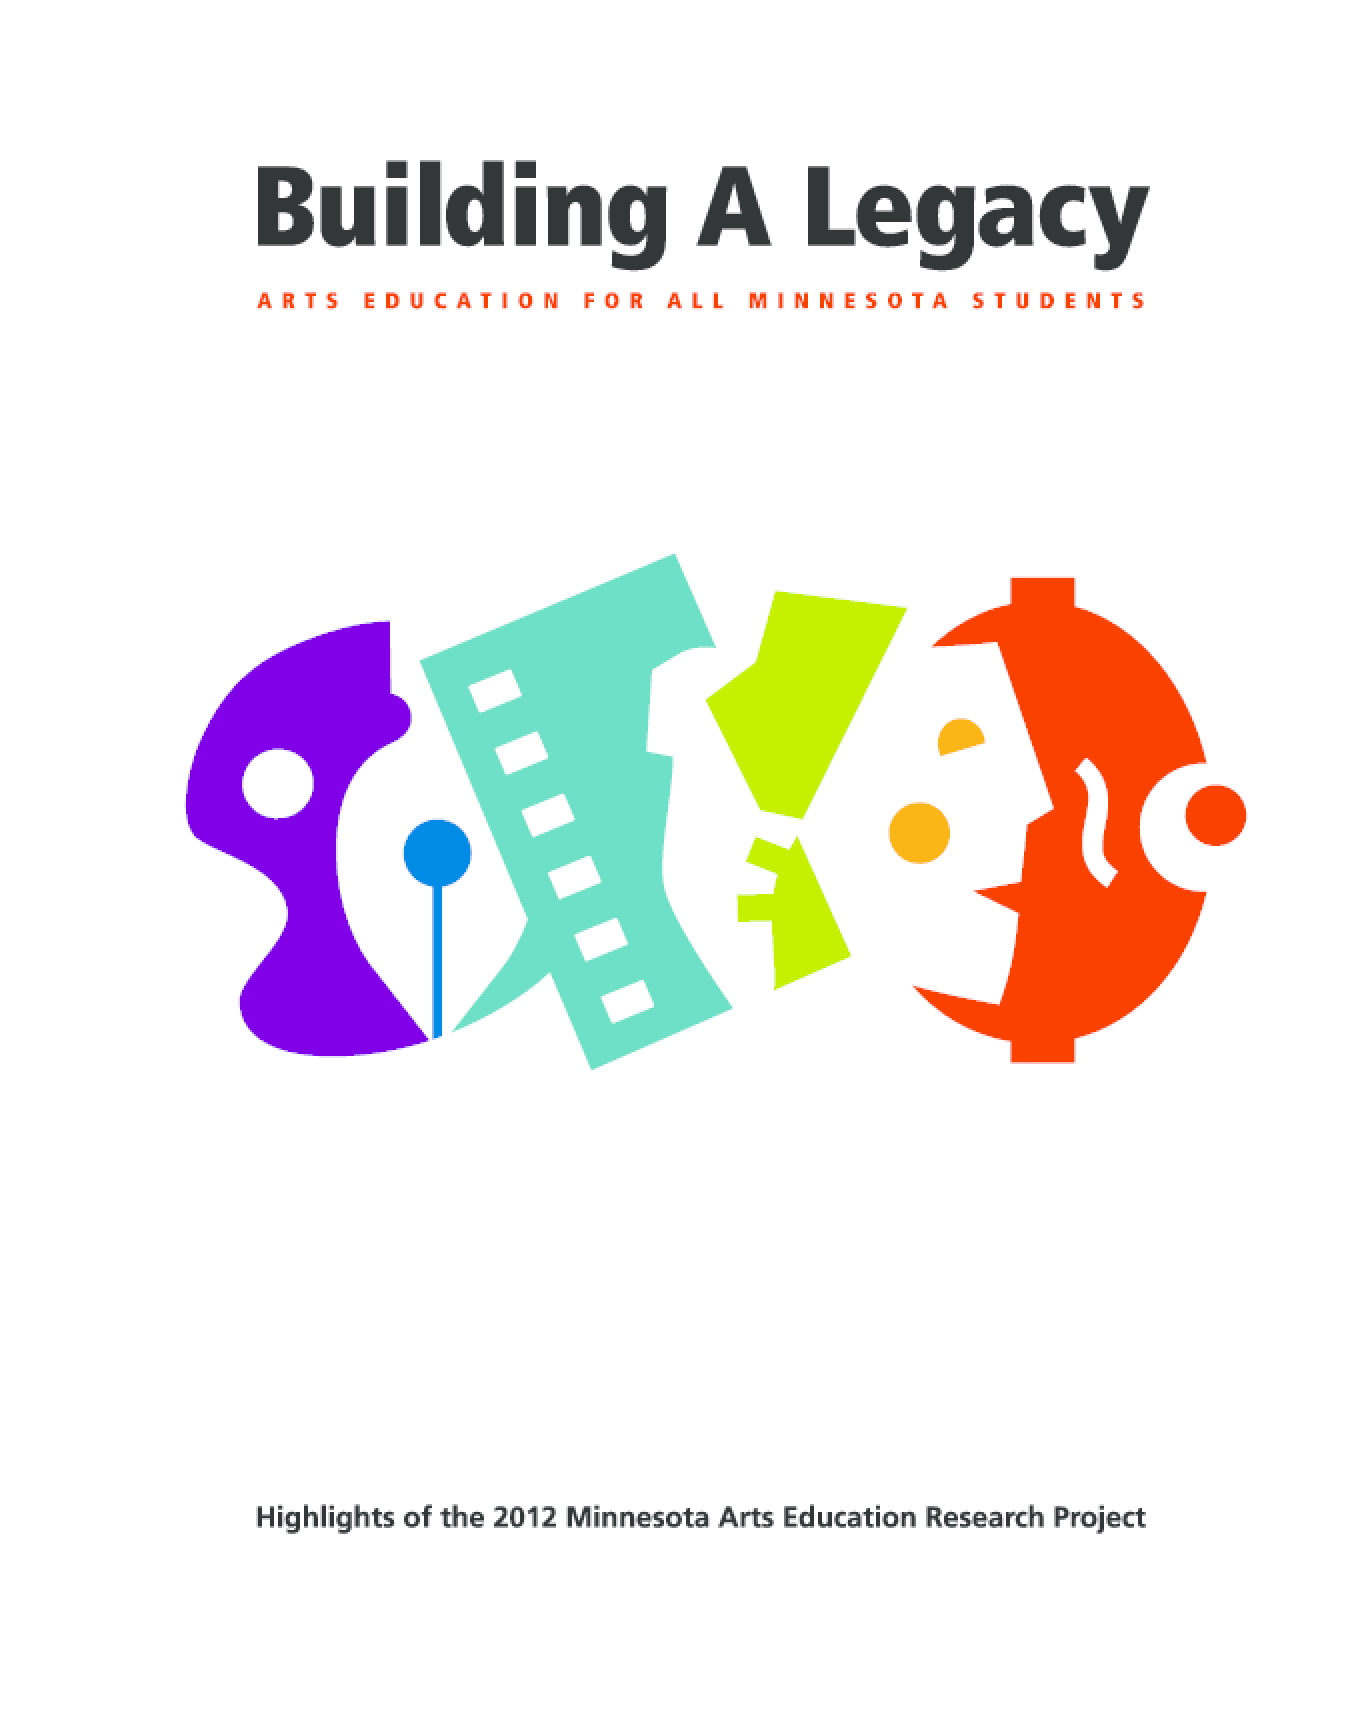 Building a Legacy: Arts Education for All Minnesota Students